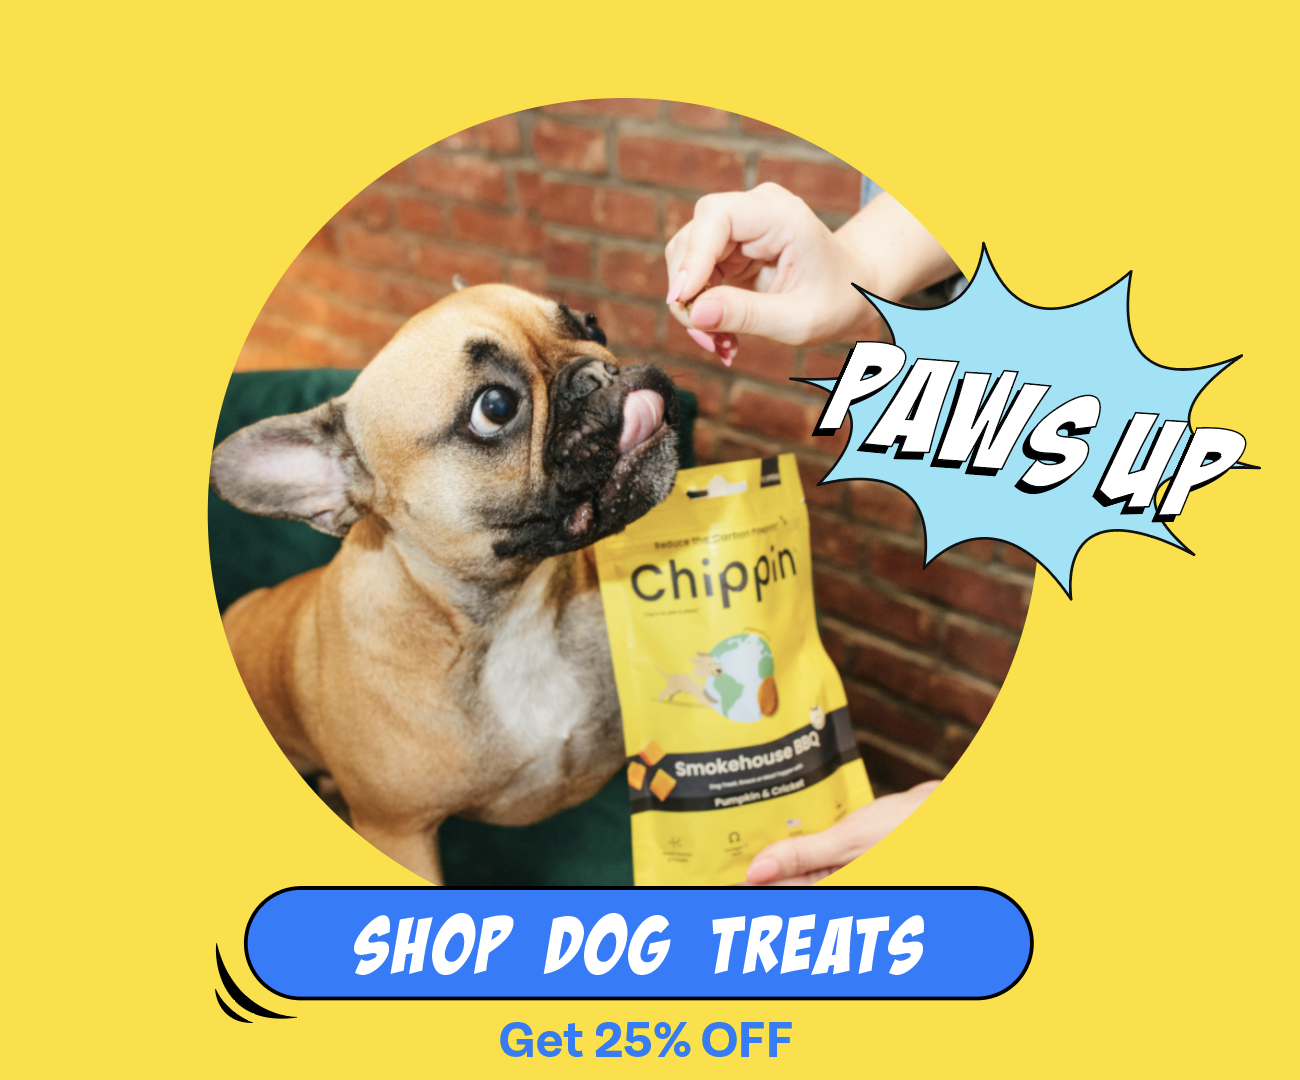 Chippin treats for dogs are the best dog training treats